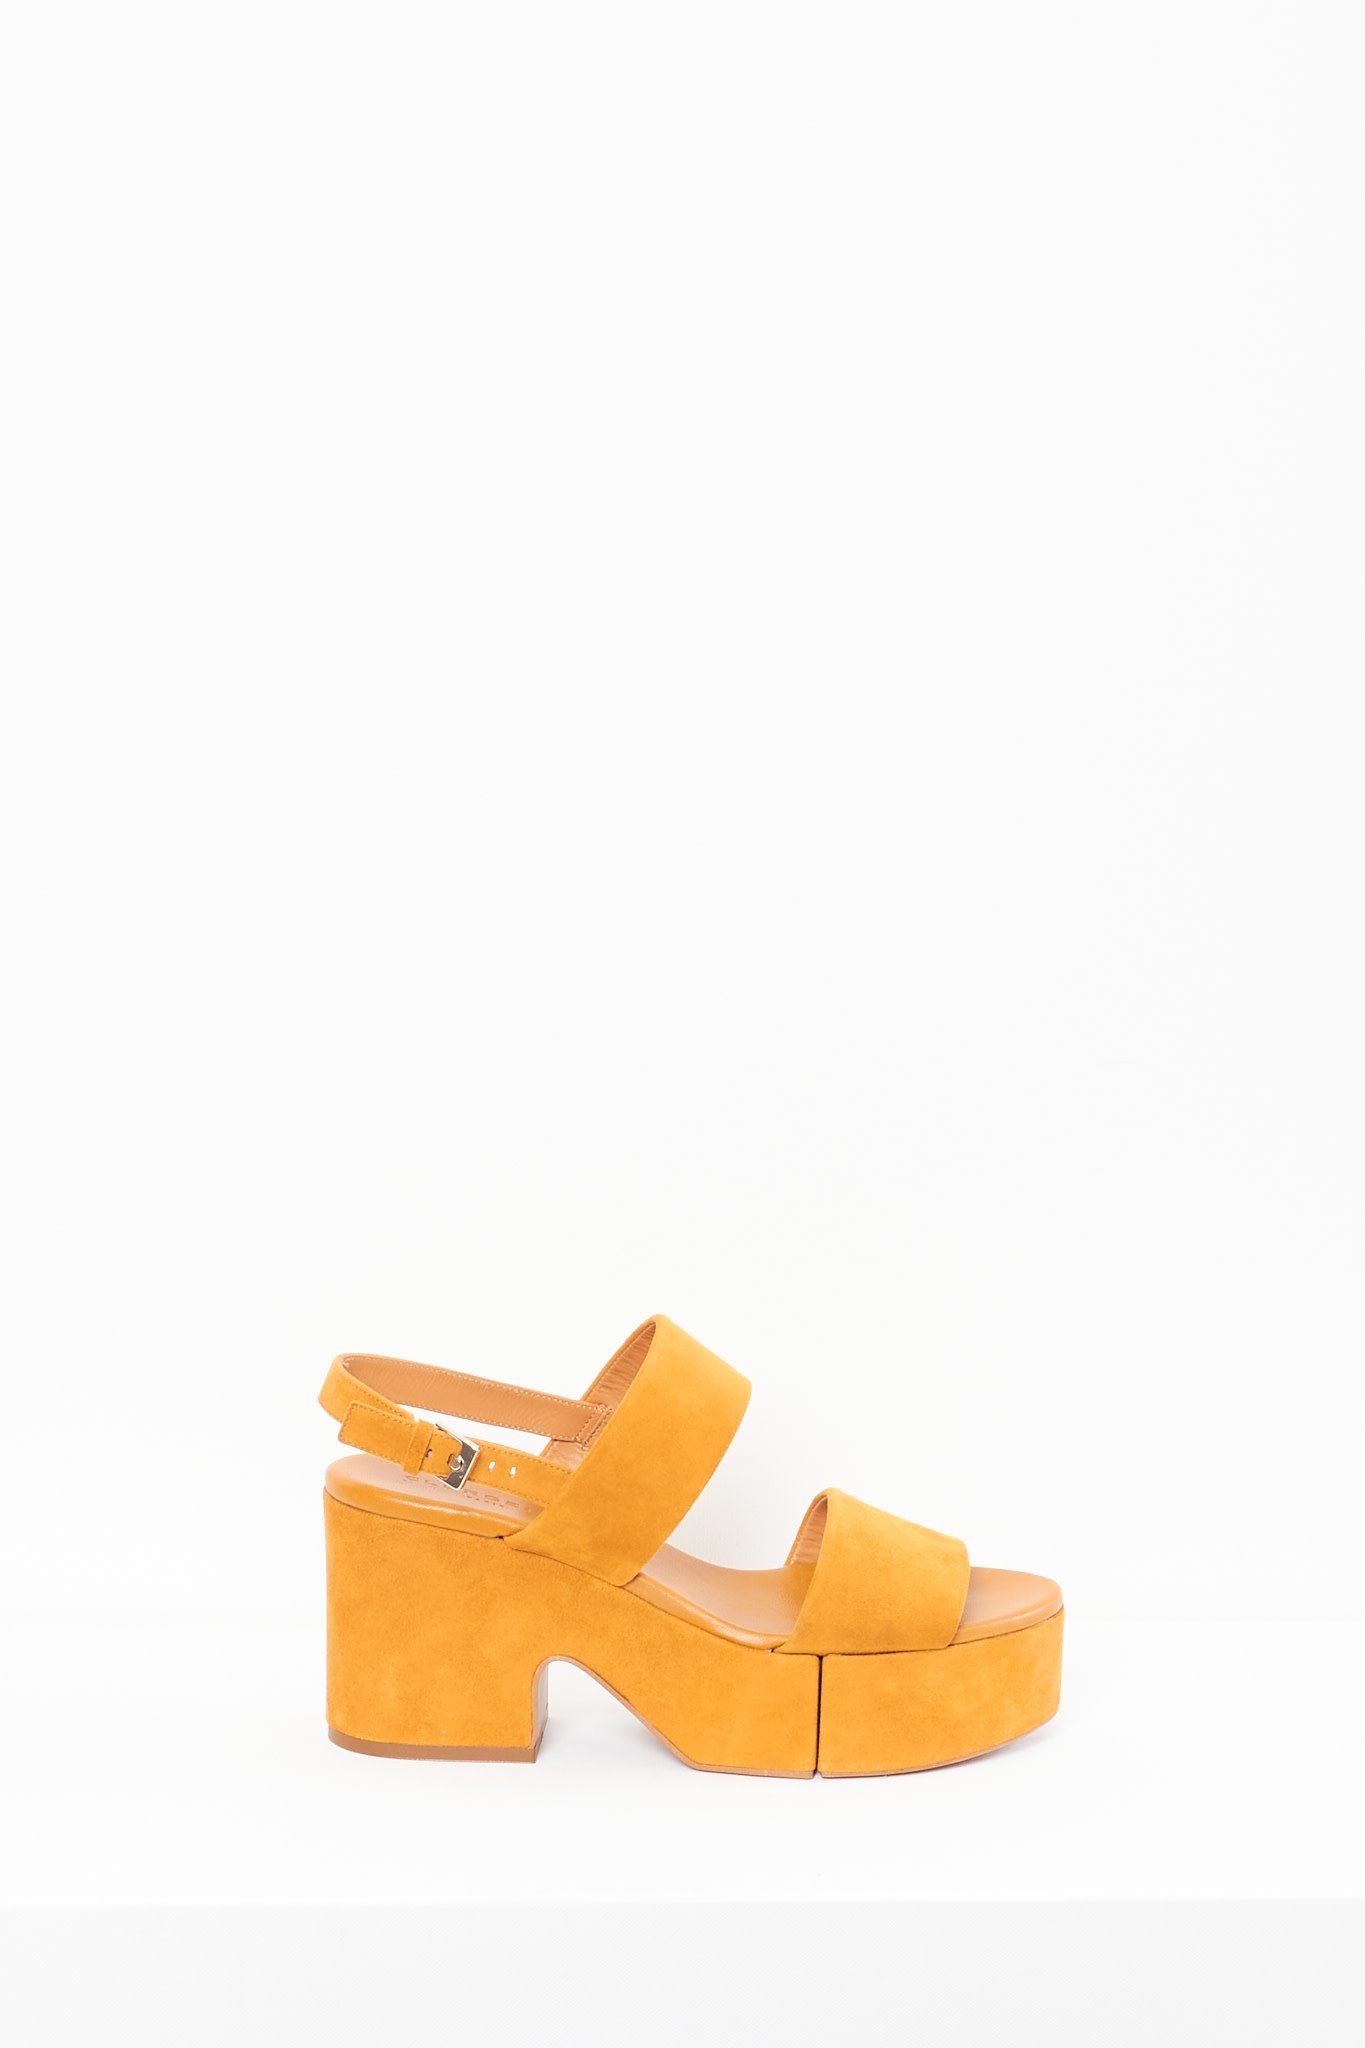 Clergerie - Cora6 suede leather sandals